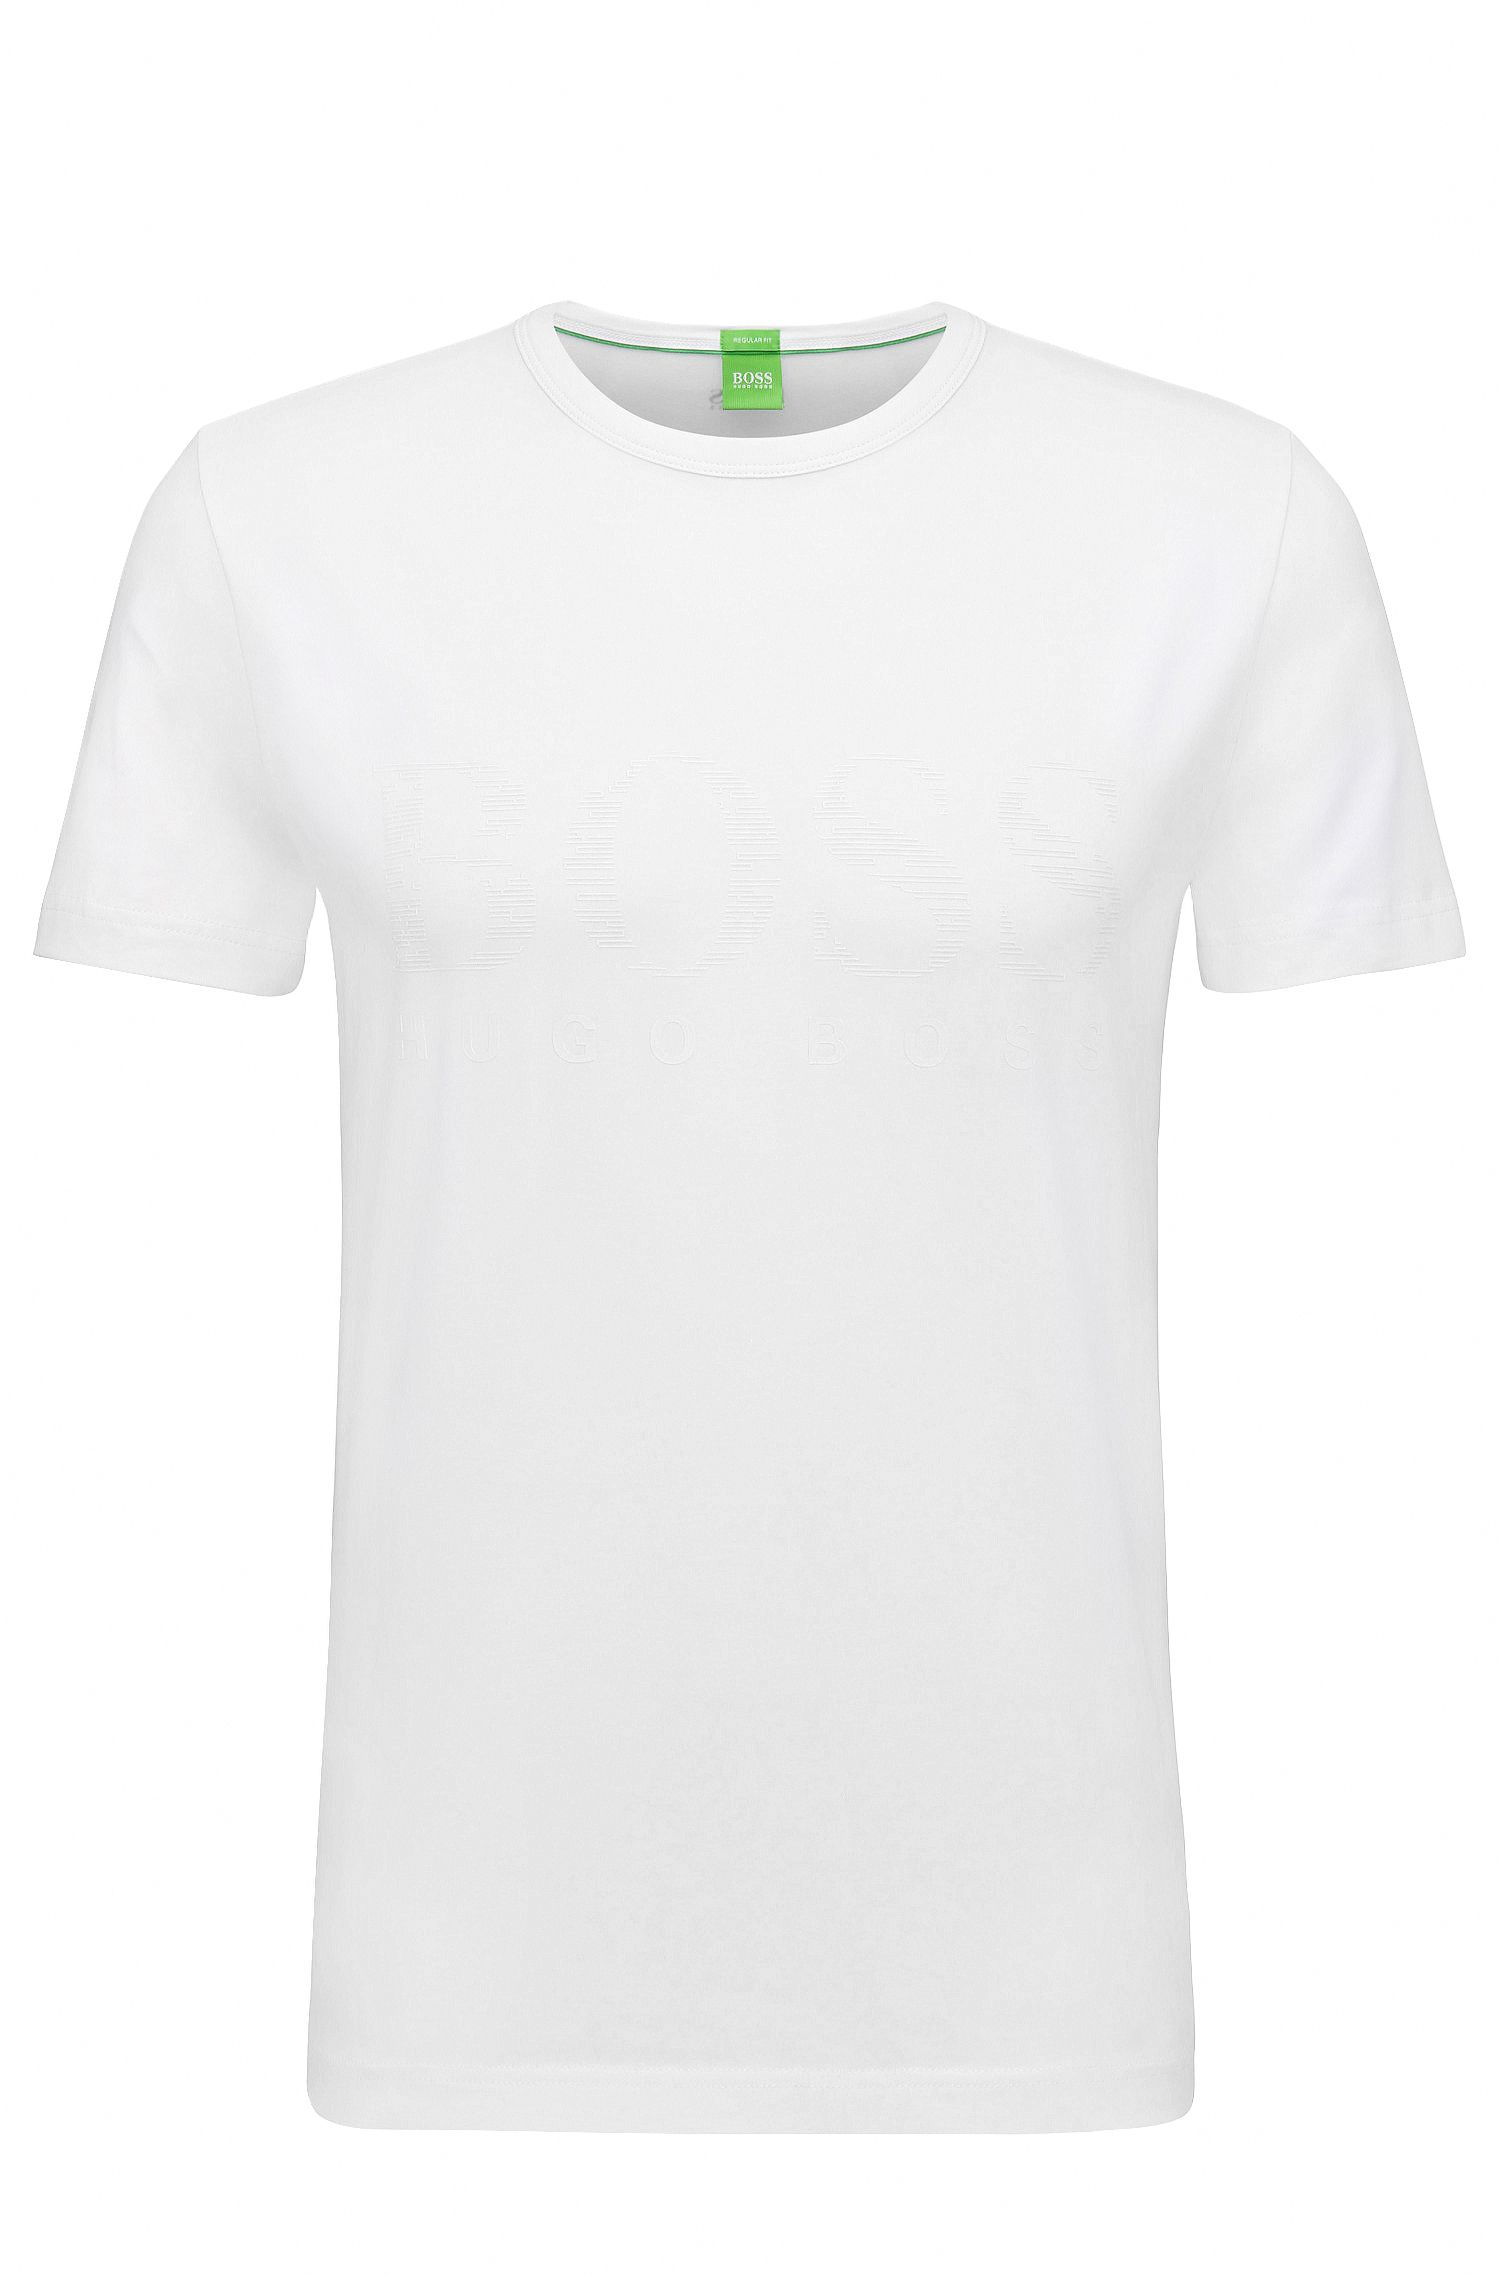 T-shirt imprimé en coton stretch : « Tee US »